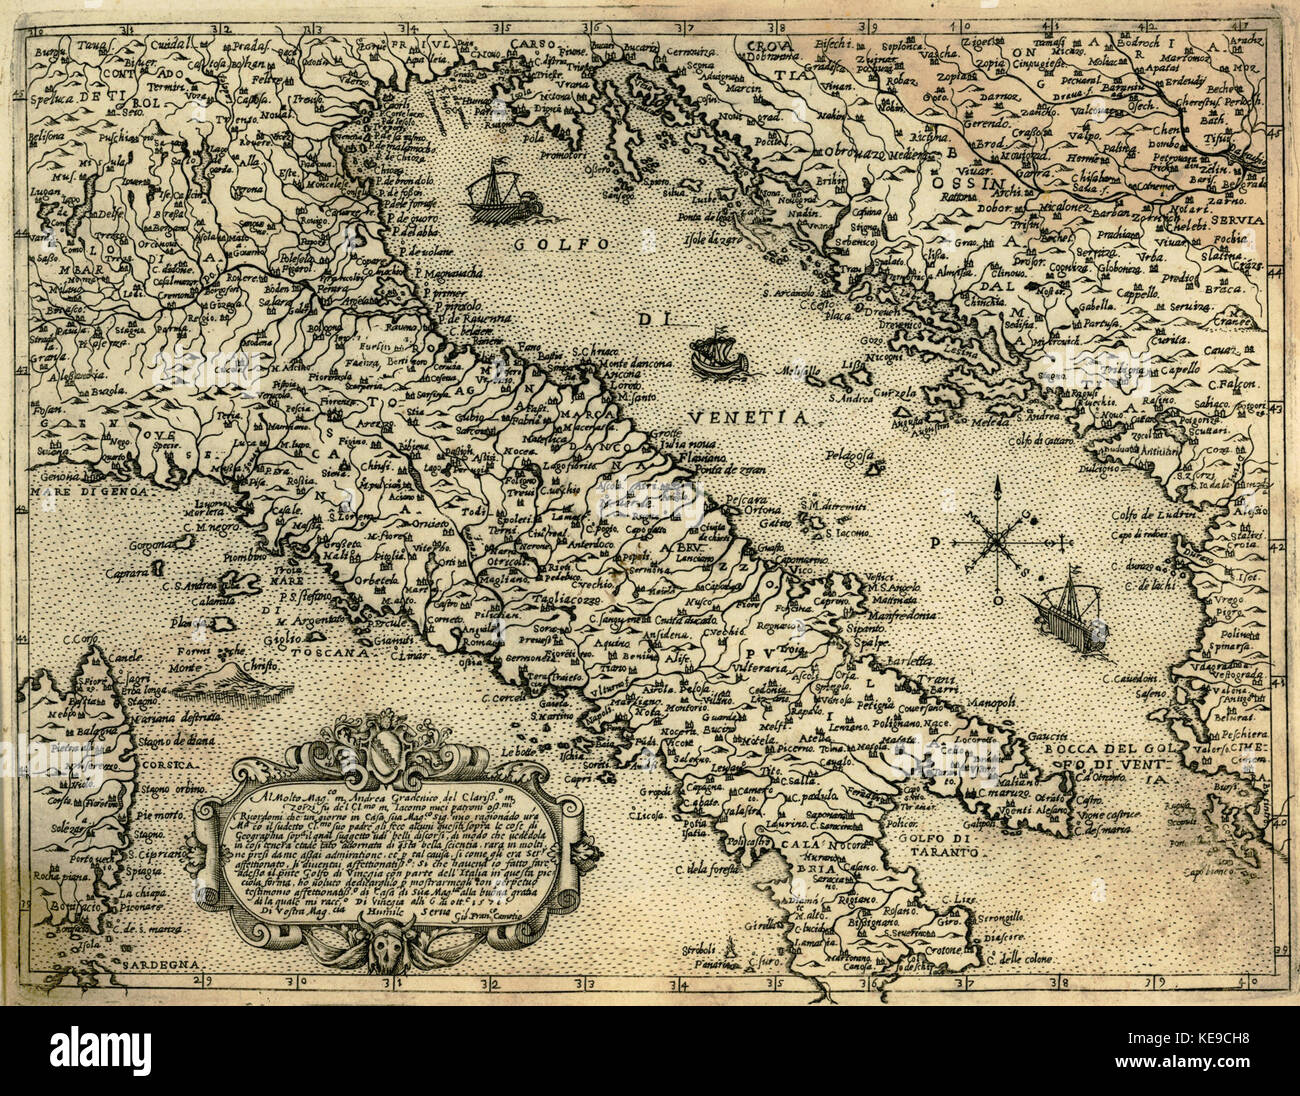 Map of Italy and the eastern coast of the Adriatic Sea   Camocio Giovanni Francesco   1574 - Stock Image